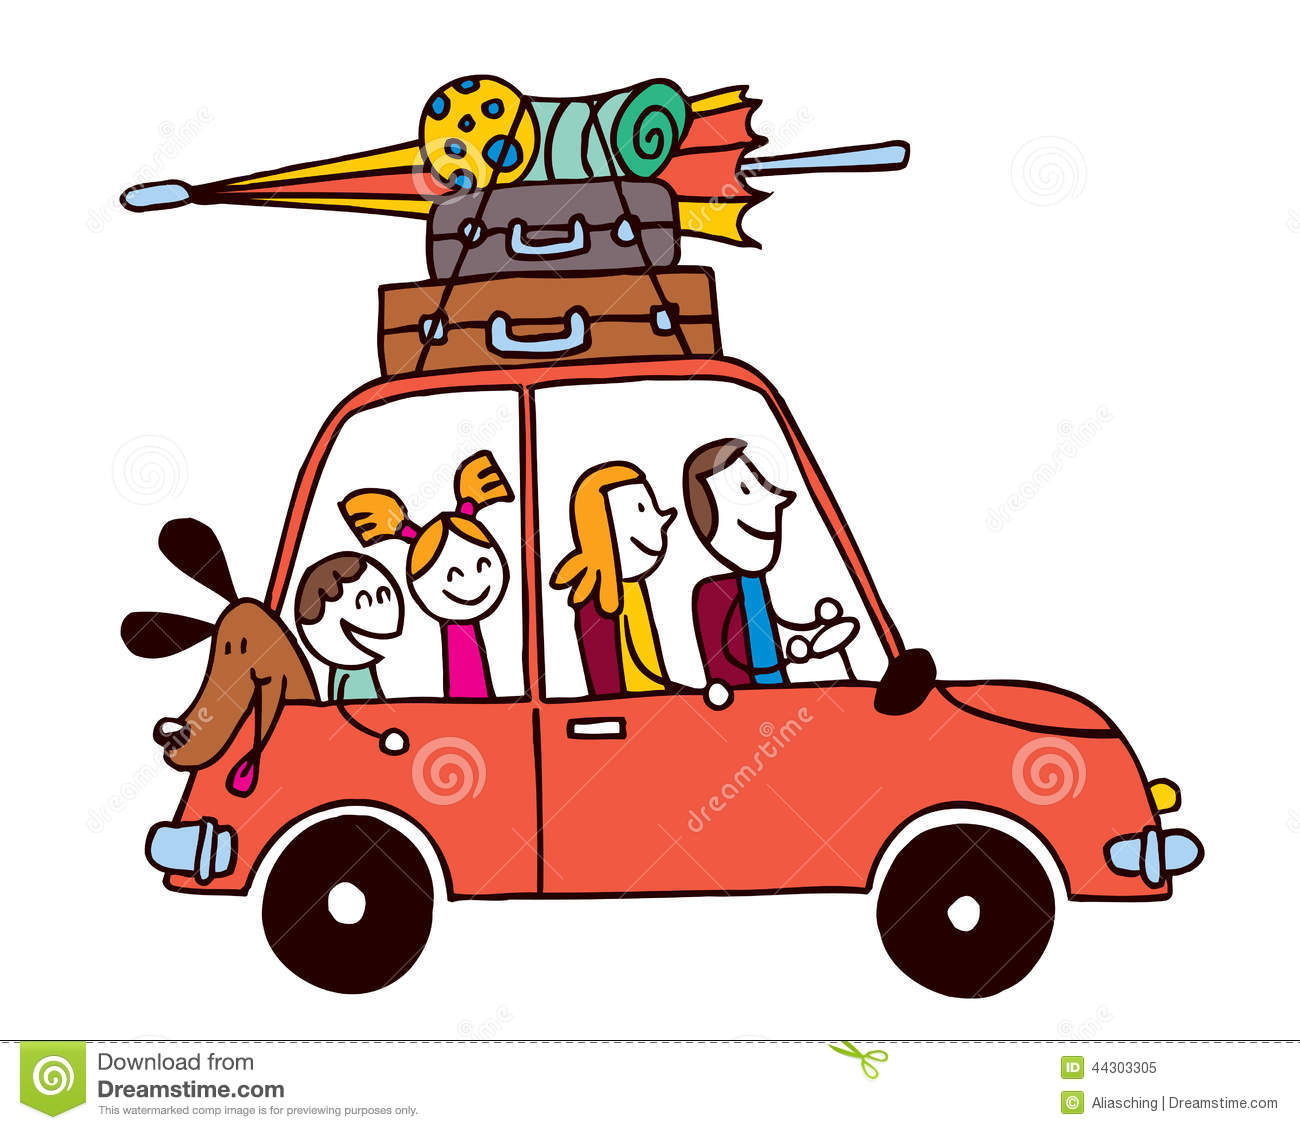 Vacation Clipart 2. Resolution 1300x1130-Vacation clipart 2. Resolution 1300x1130 .-10